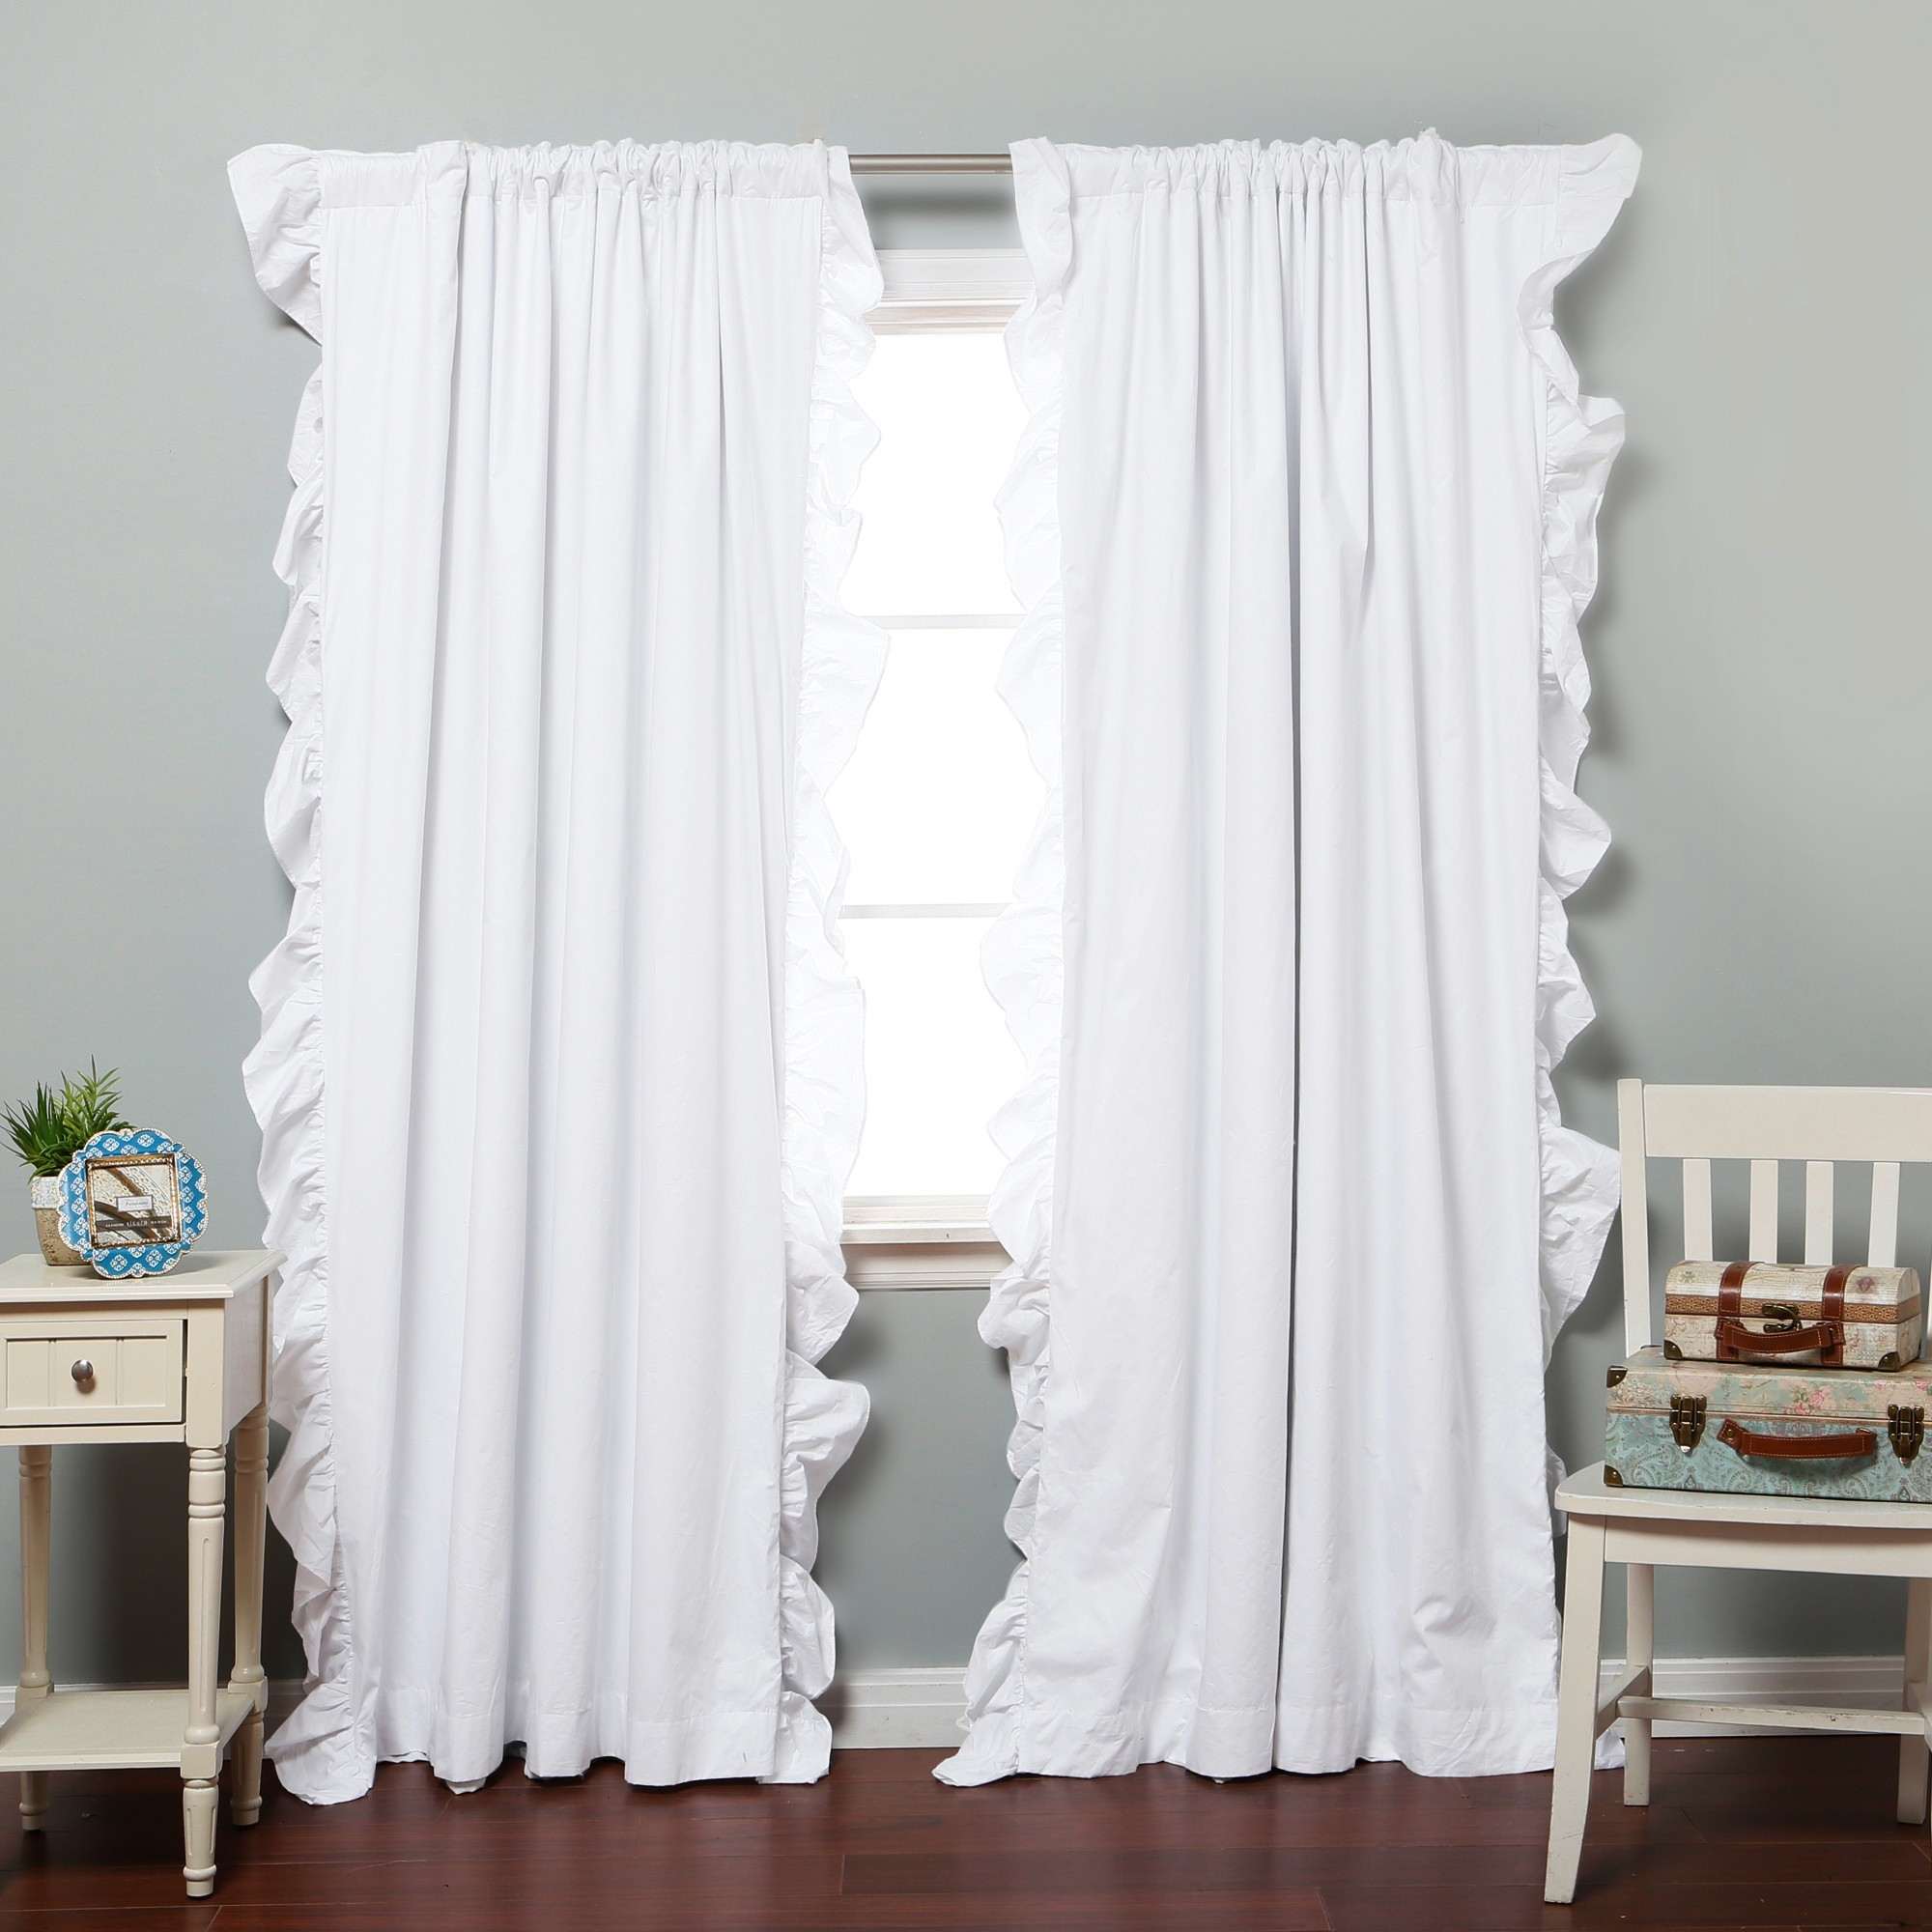 Wonderful Blackout Curtains Target For Home Decoration Ideas For White Thermal Curtains (Image 15 of 15)